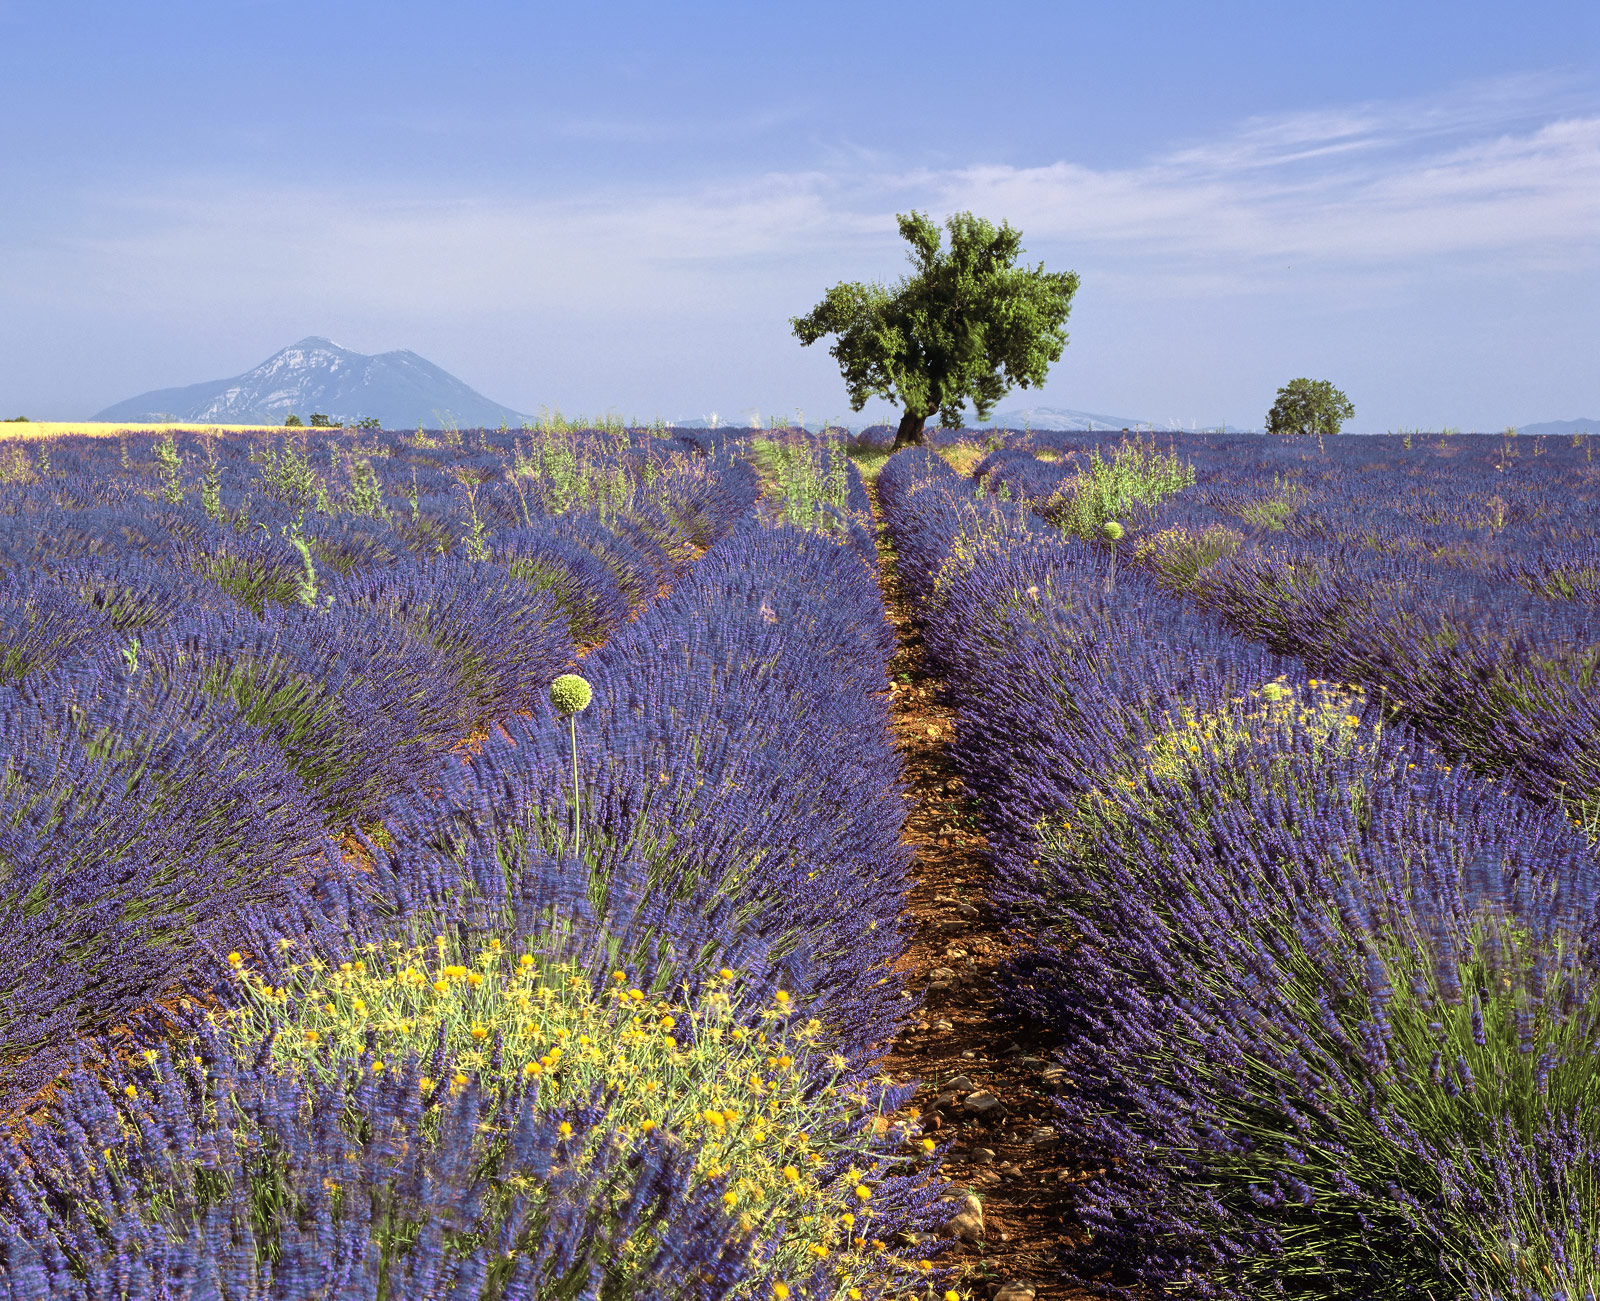 Just before the beginning of July the lavender fields ripen and are in prime condition for cutting and then processing for perfumes...